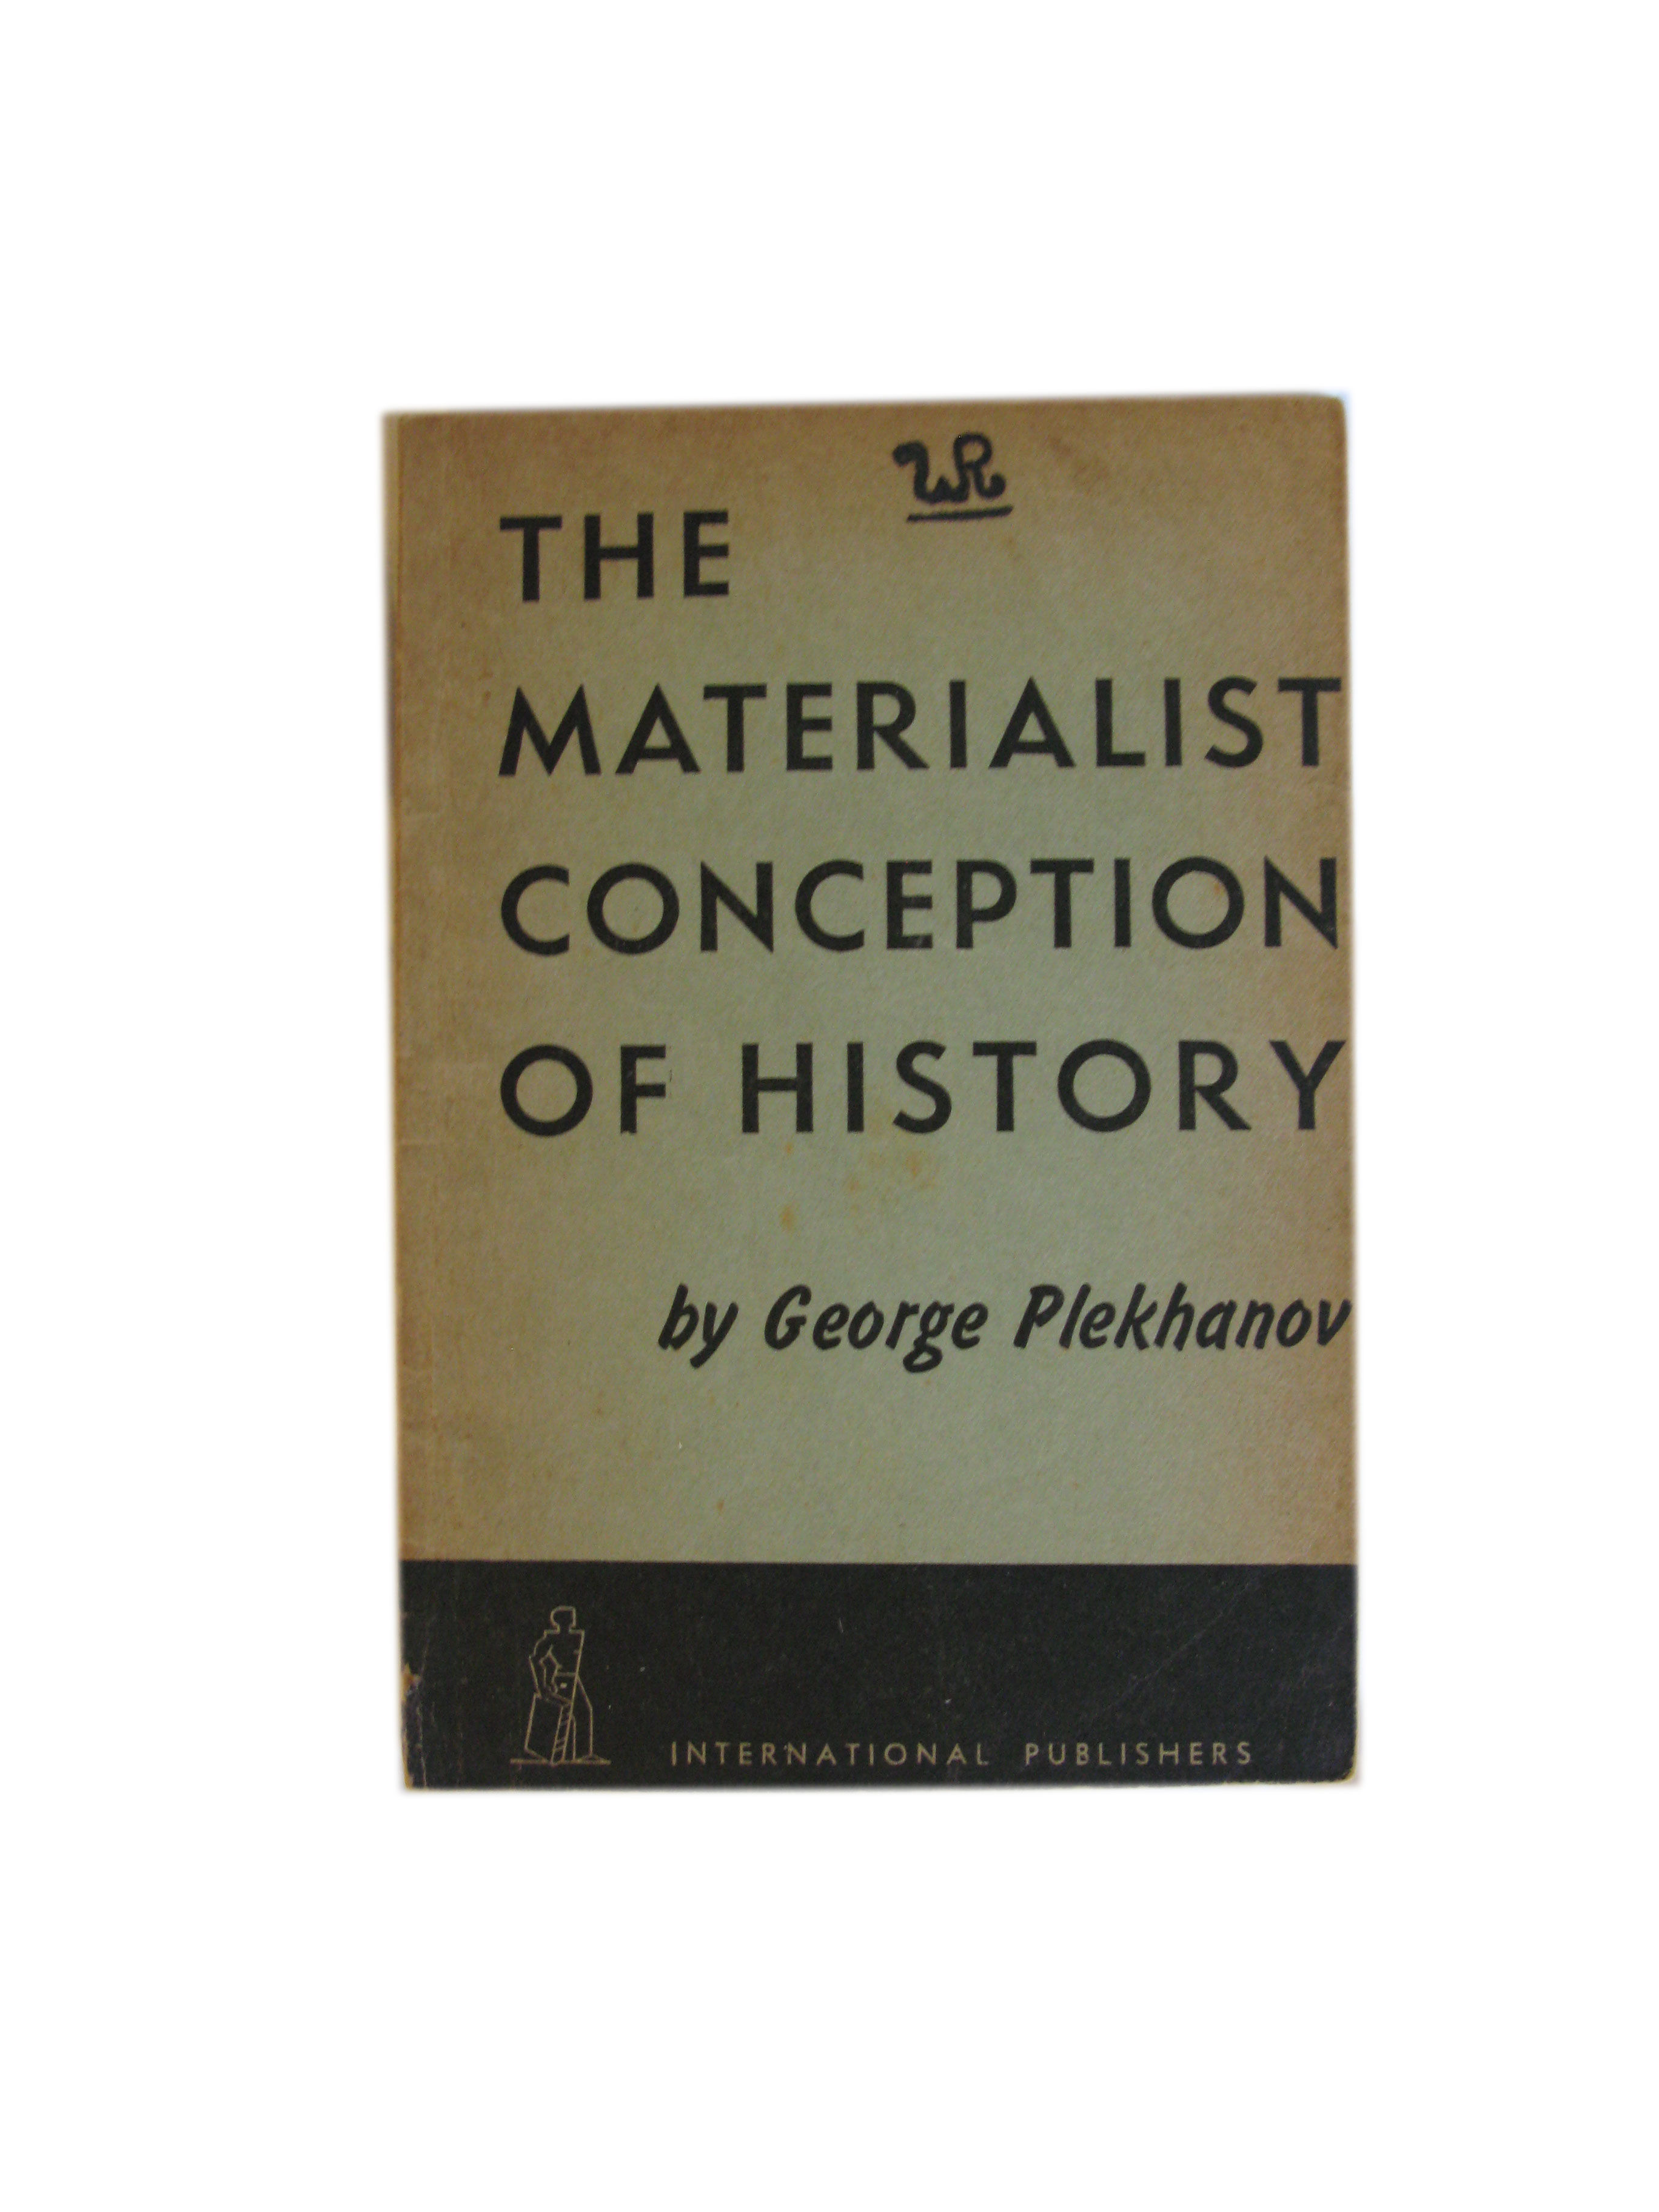 """essays on the materialist conception of history Education bulletin, nº 1, 1979 the materialist conception of history general introduction the object of this course of 10 classes entitled """"aspects of marxism."""